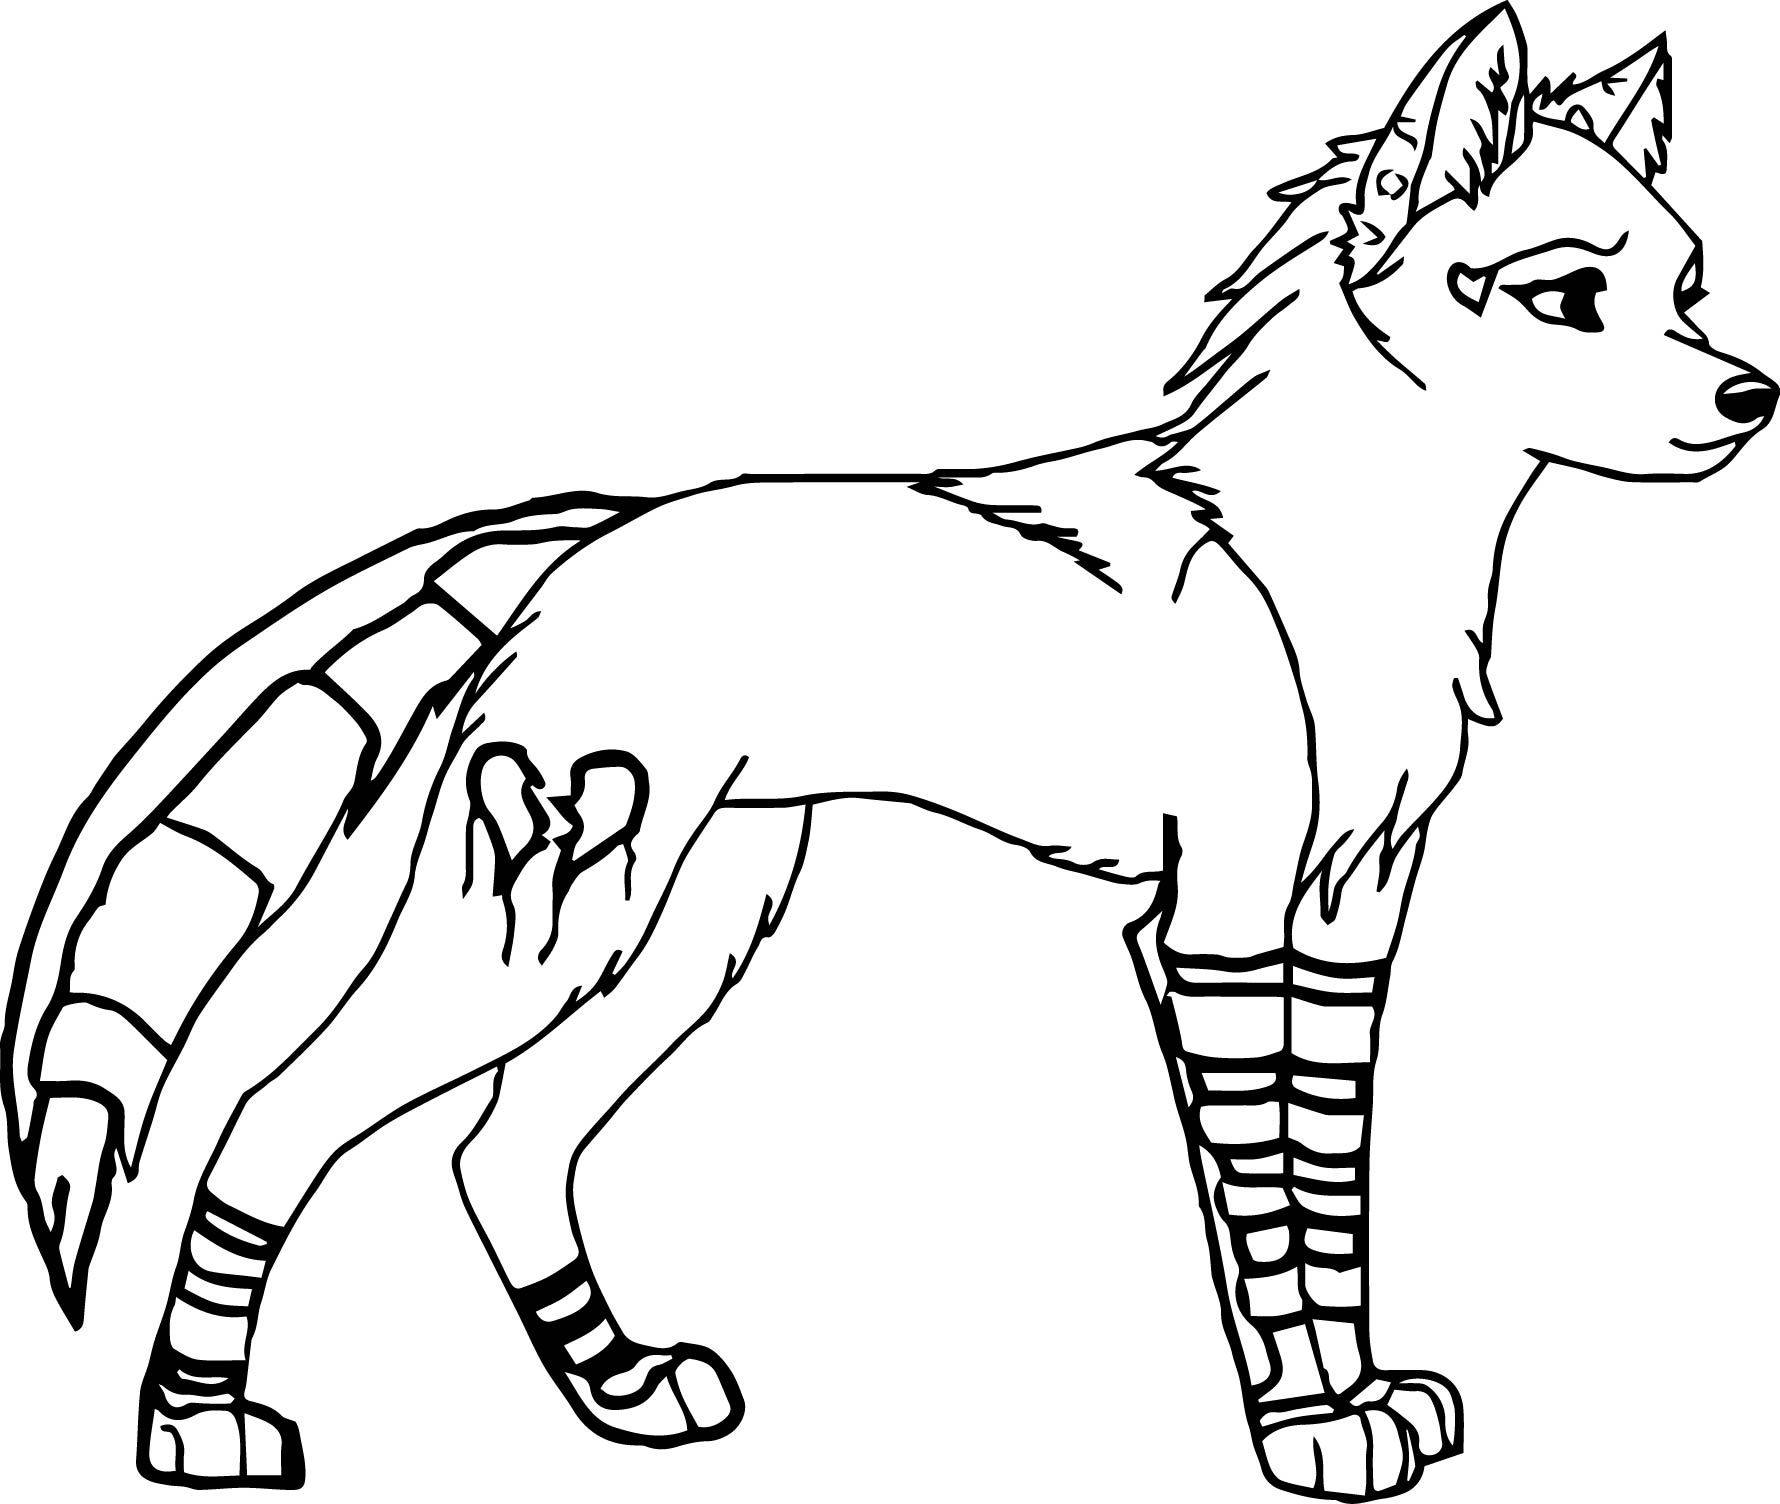 Baby Wolf Coloring Pages To Print Wolf Coloring Page Wolf Coloring Pages Puppy Coloring Pages